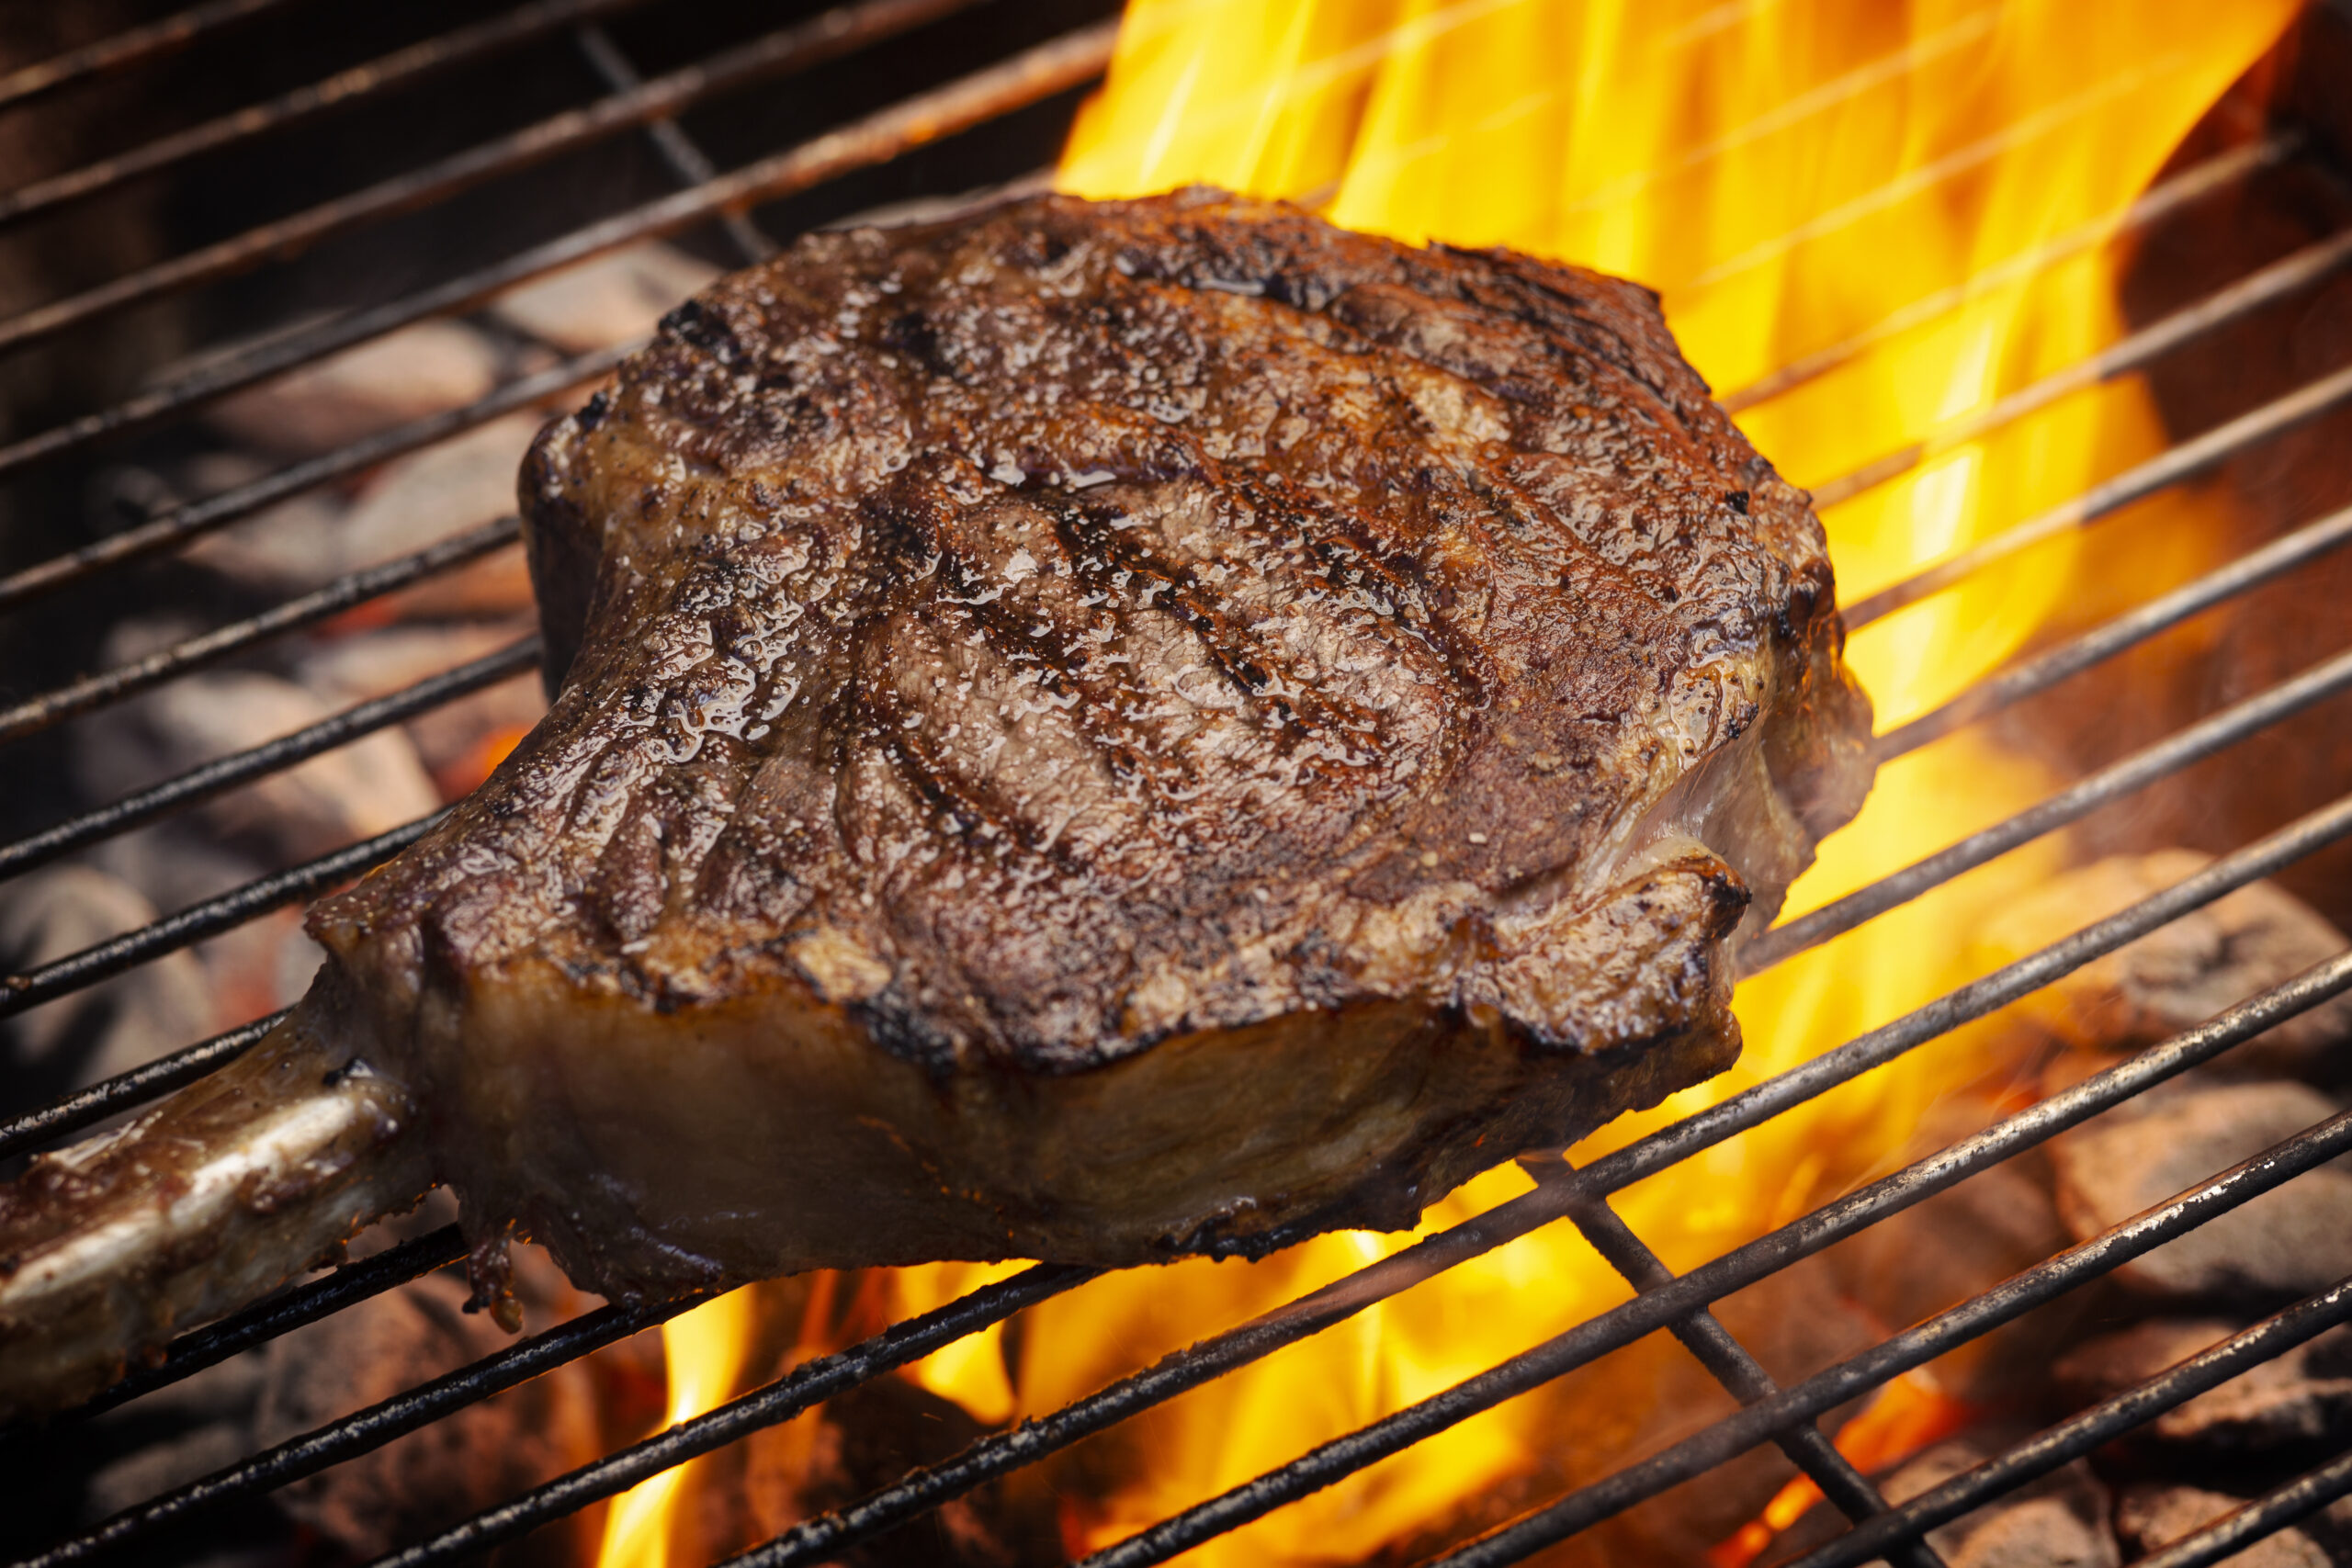 a bone-in tomahawk ribeye steak cooking on grill with flames, angled view